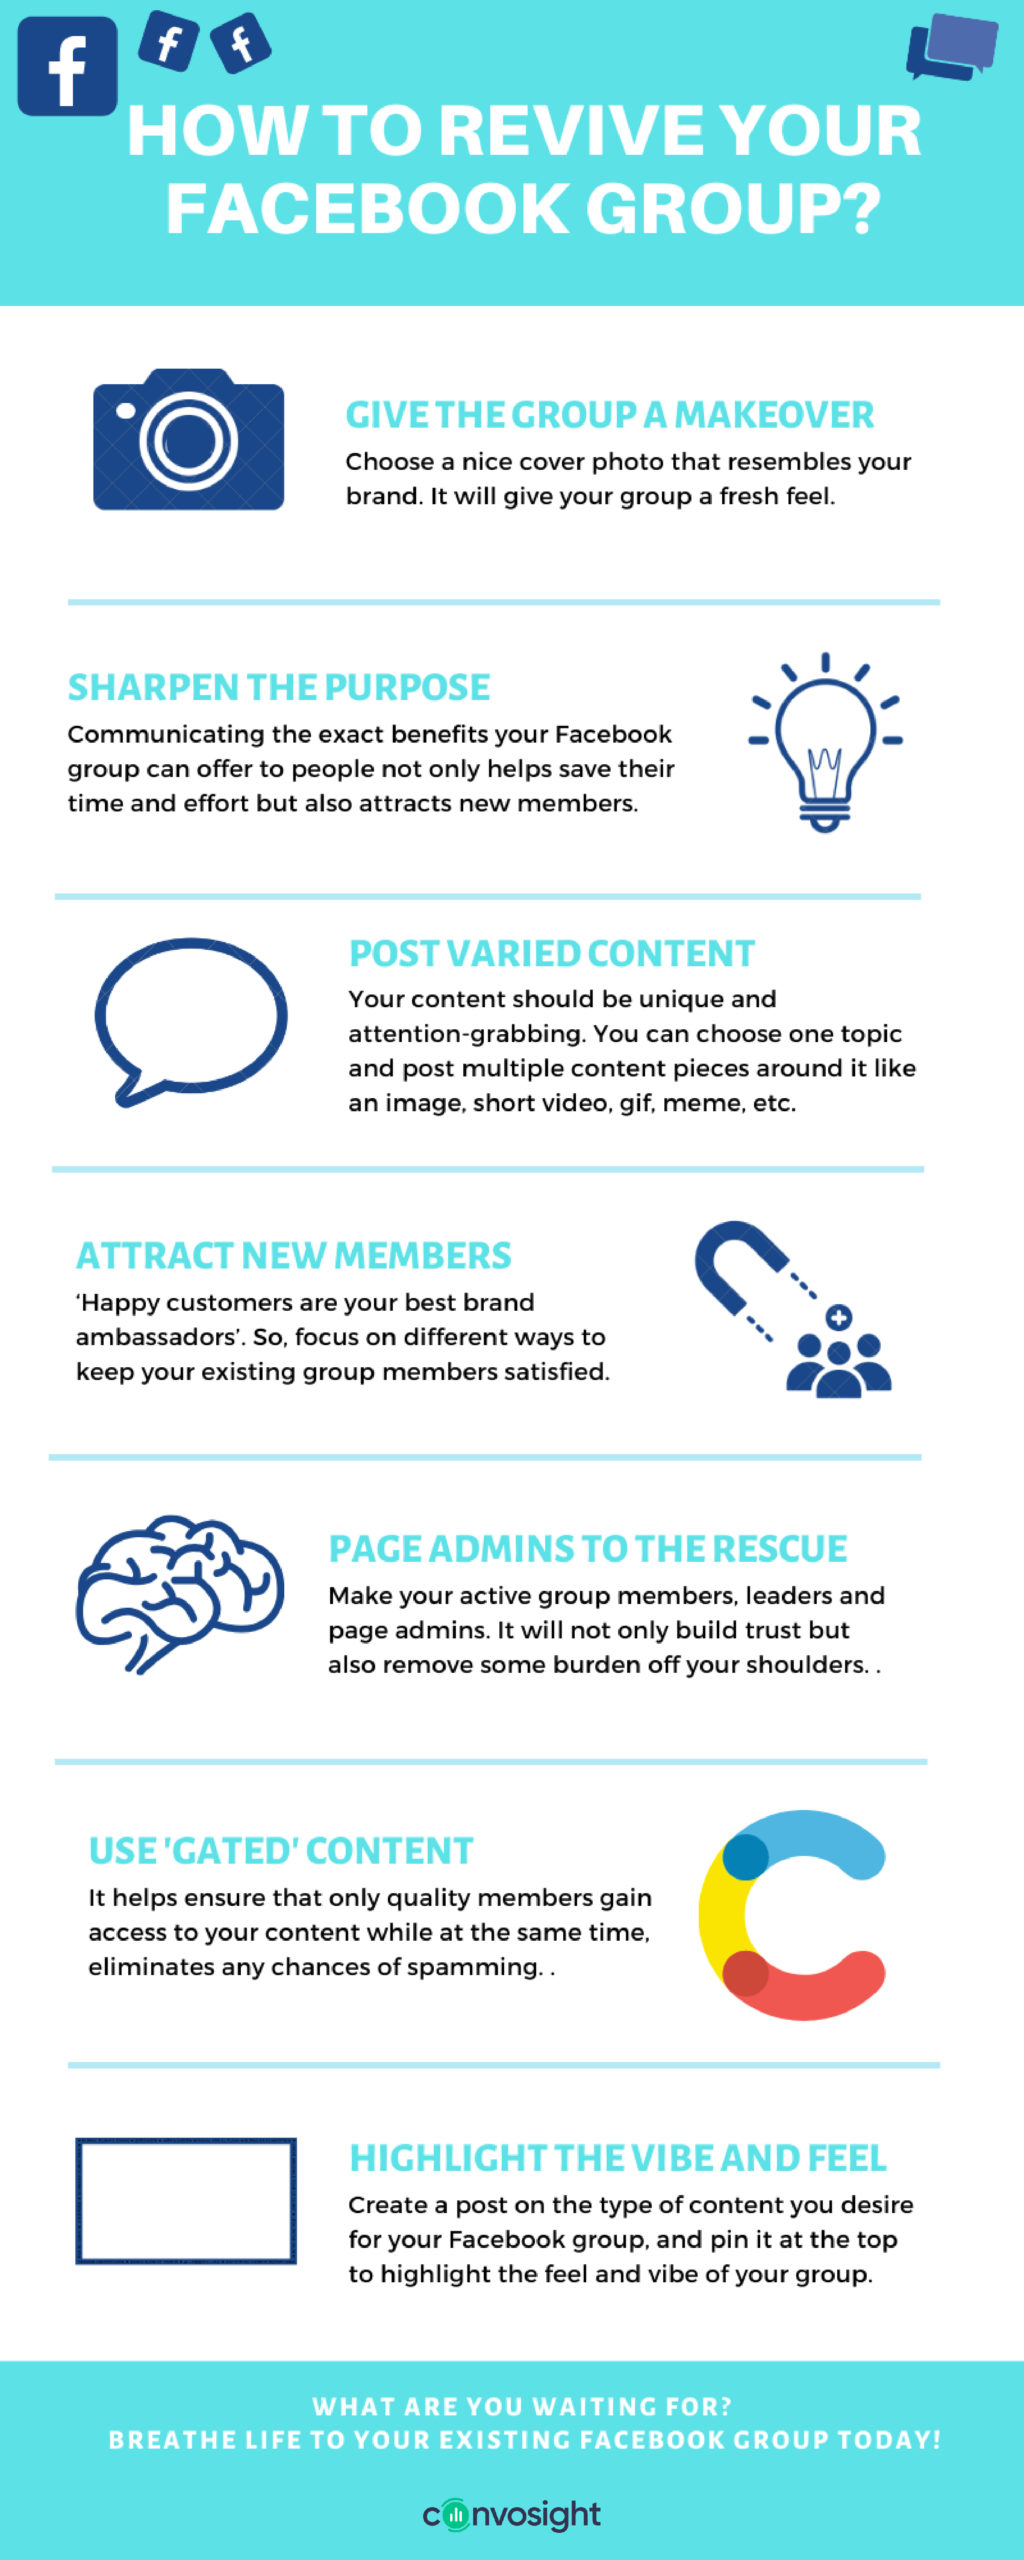 7 Sure Shot Ways To Revive Your Dead Facebook Group